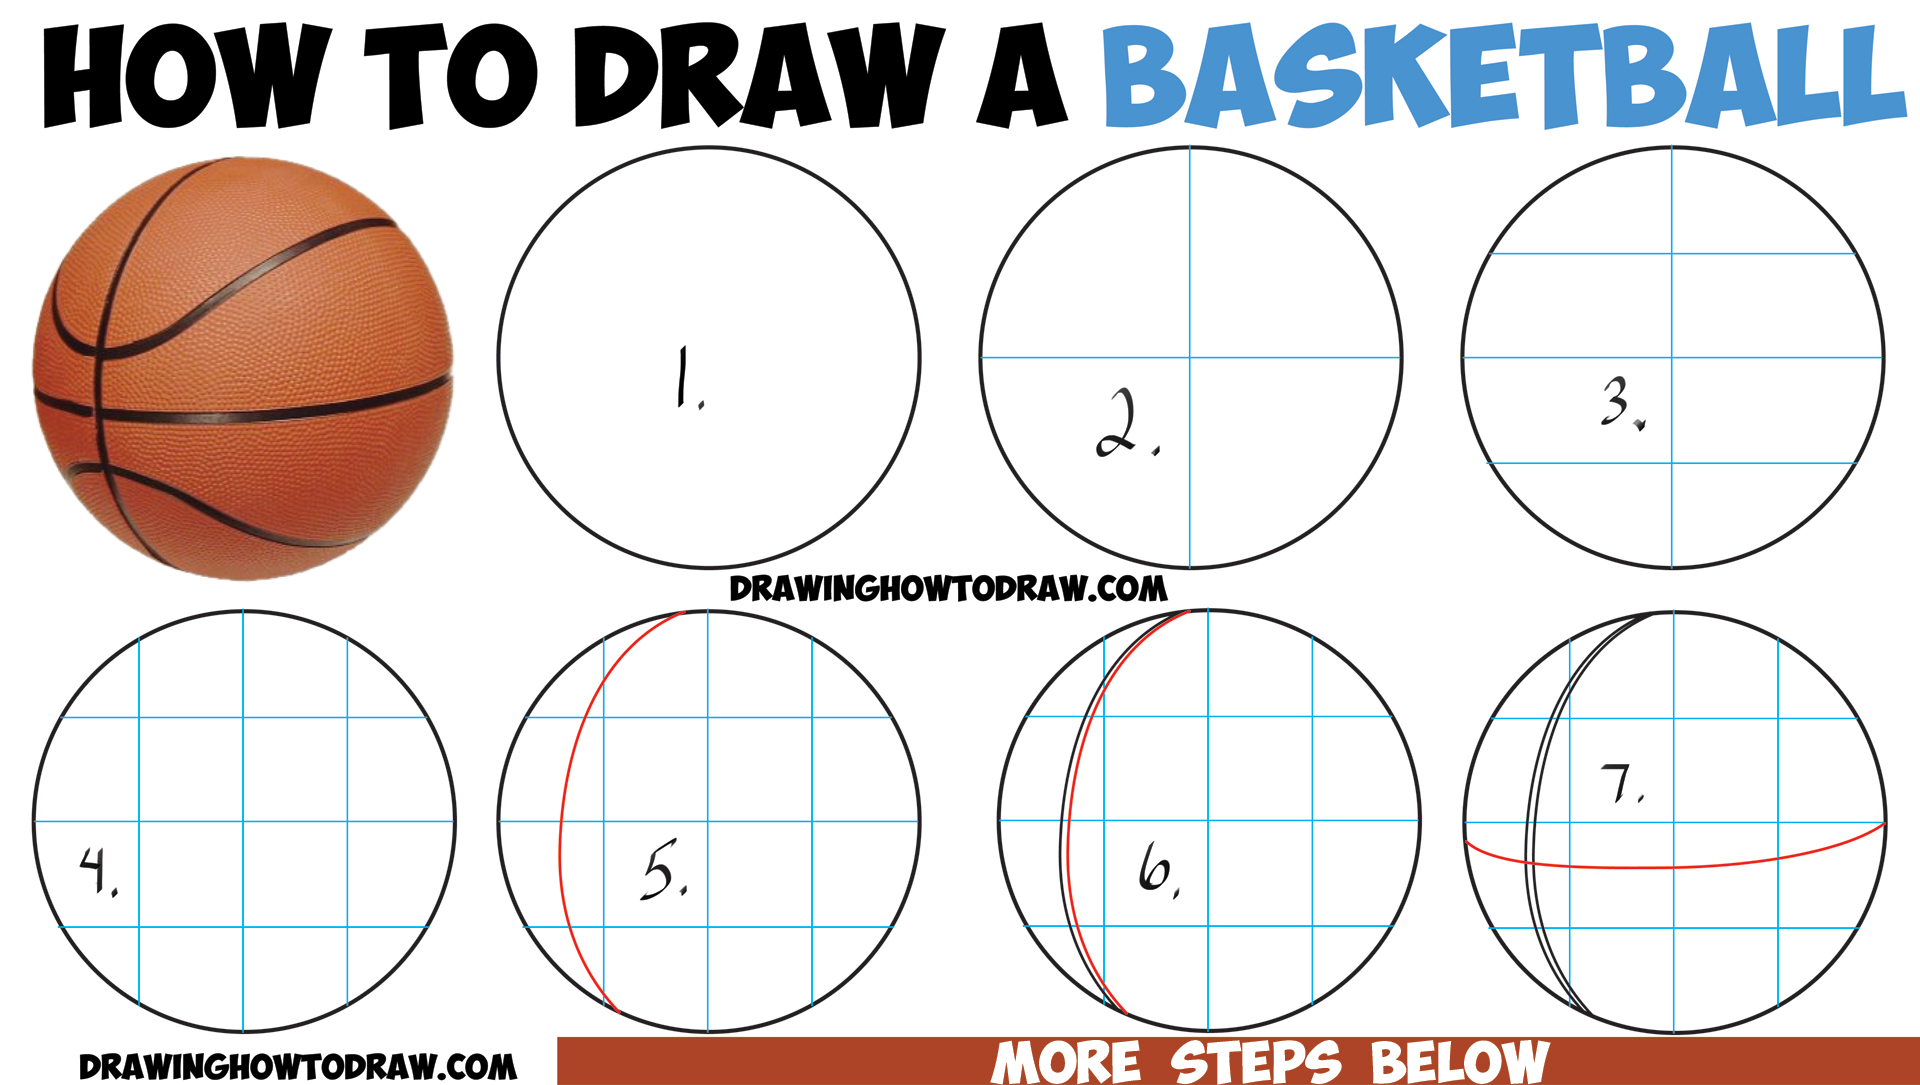 How to draw a basketball in easy step by step drawing for Learn drawing online step by step